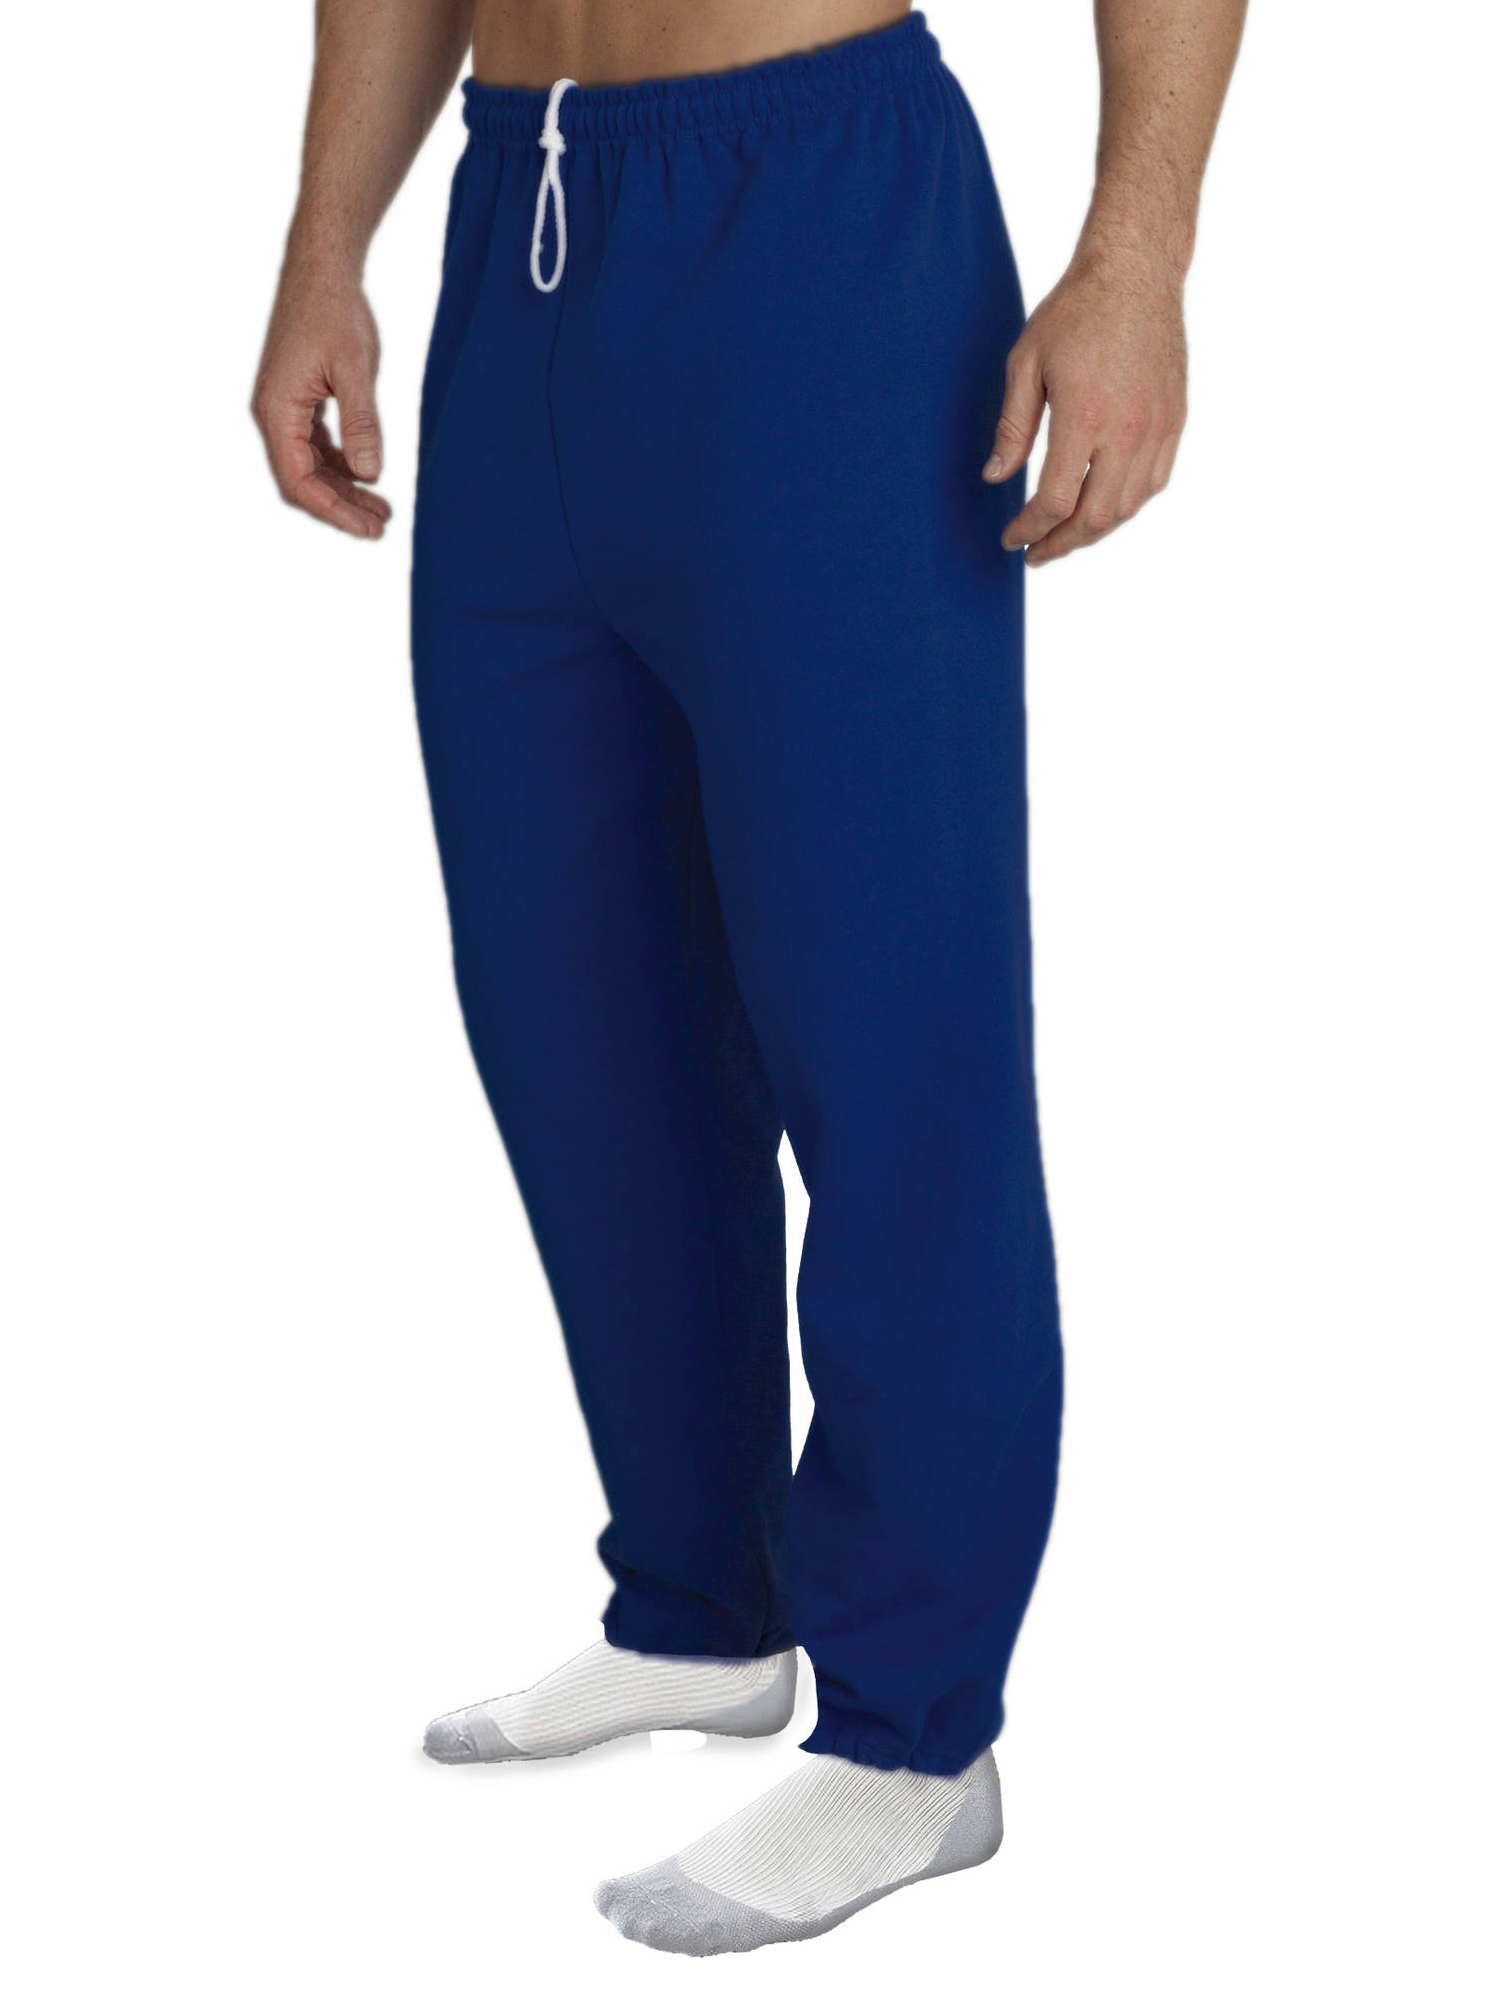 Big Men's Elastic Bottom Pocketed Sweatpant, 2XL